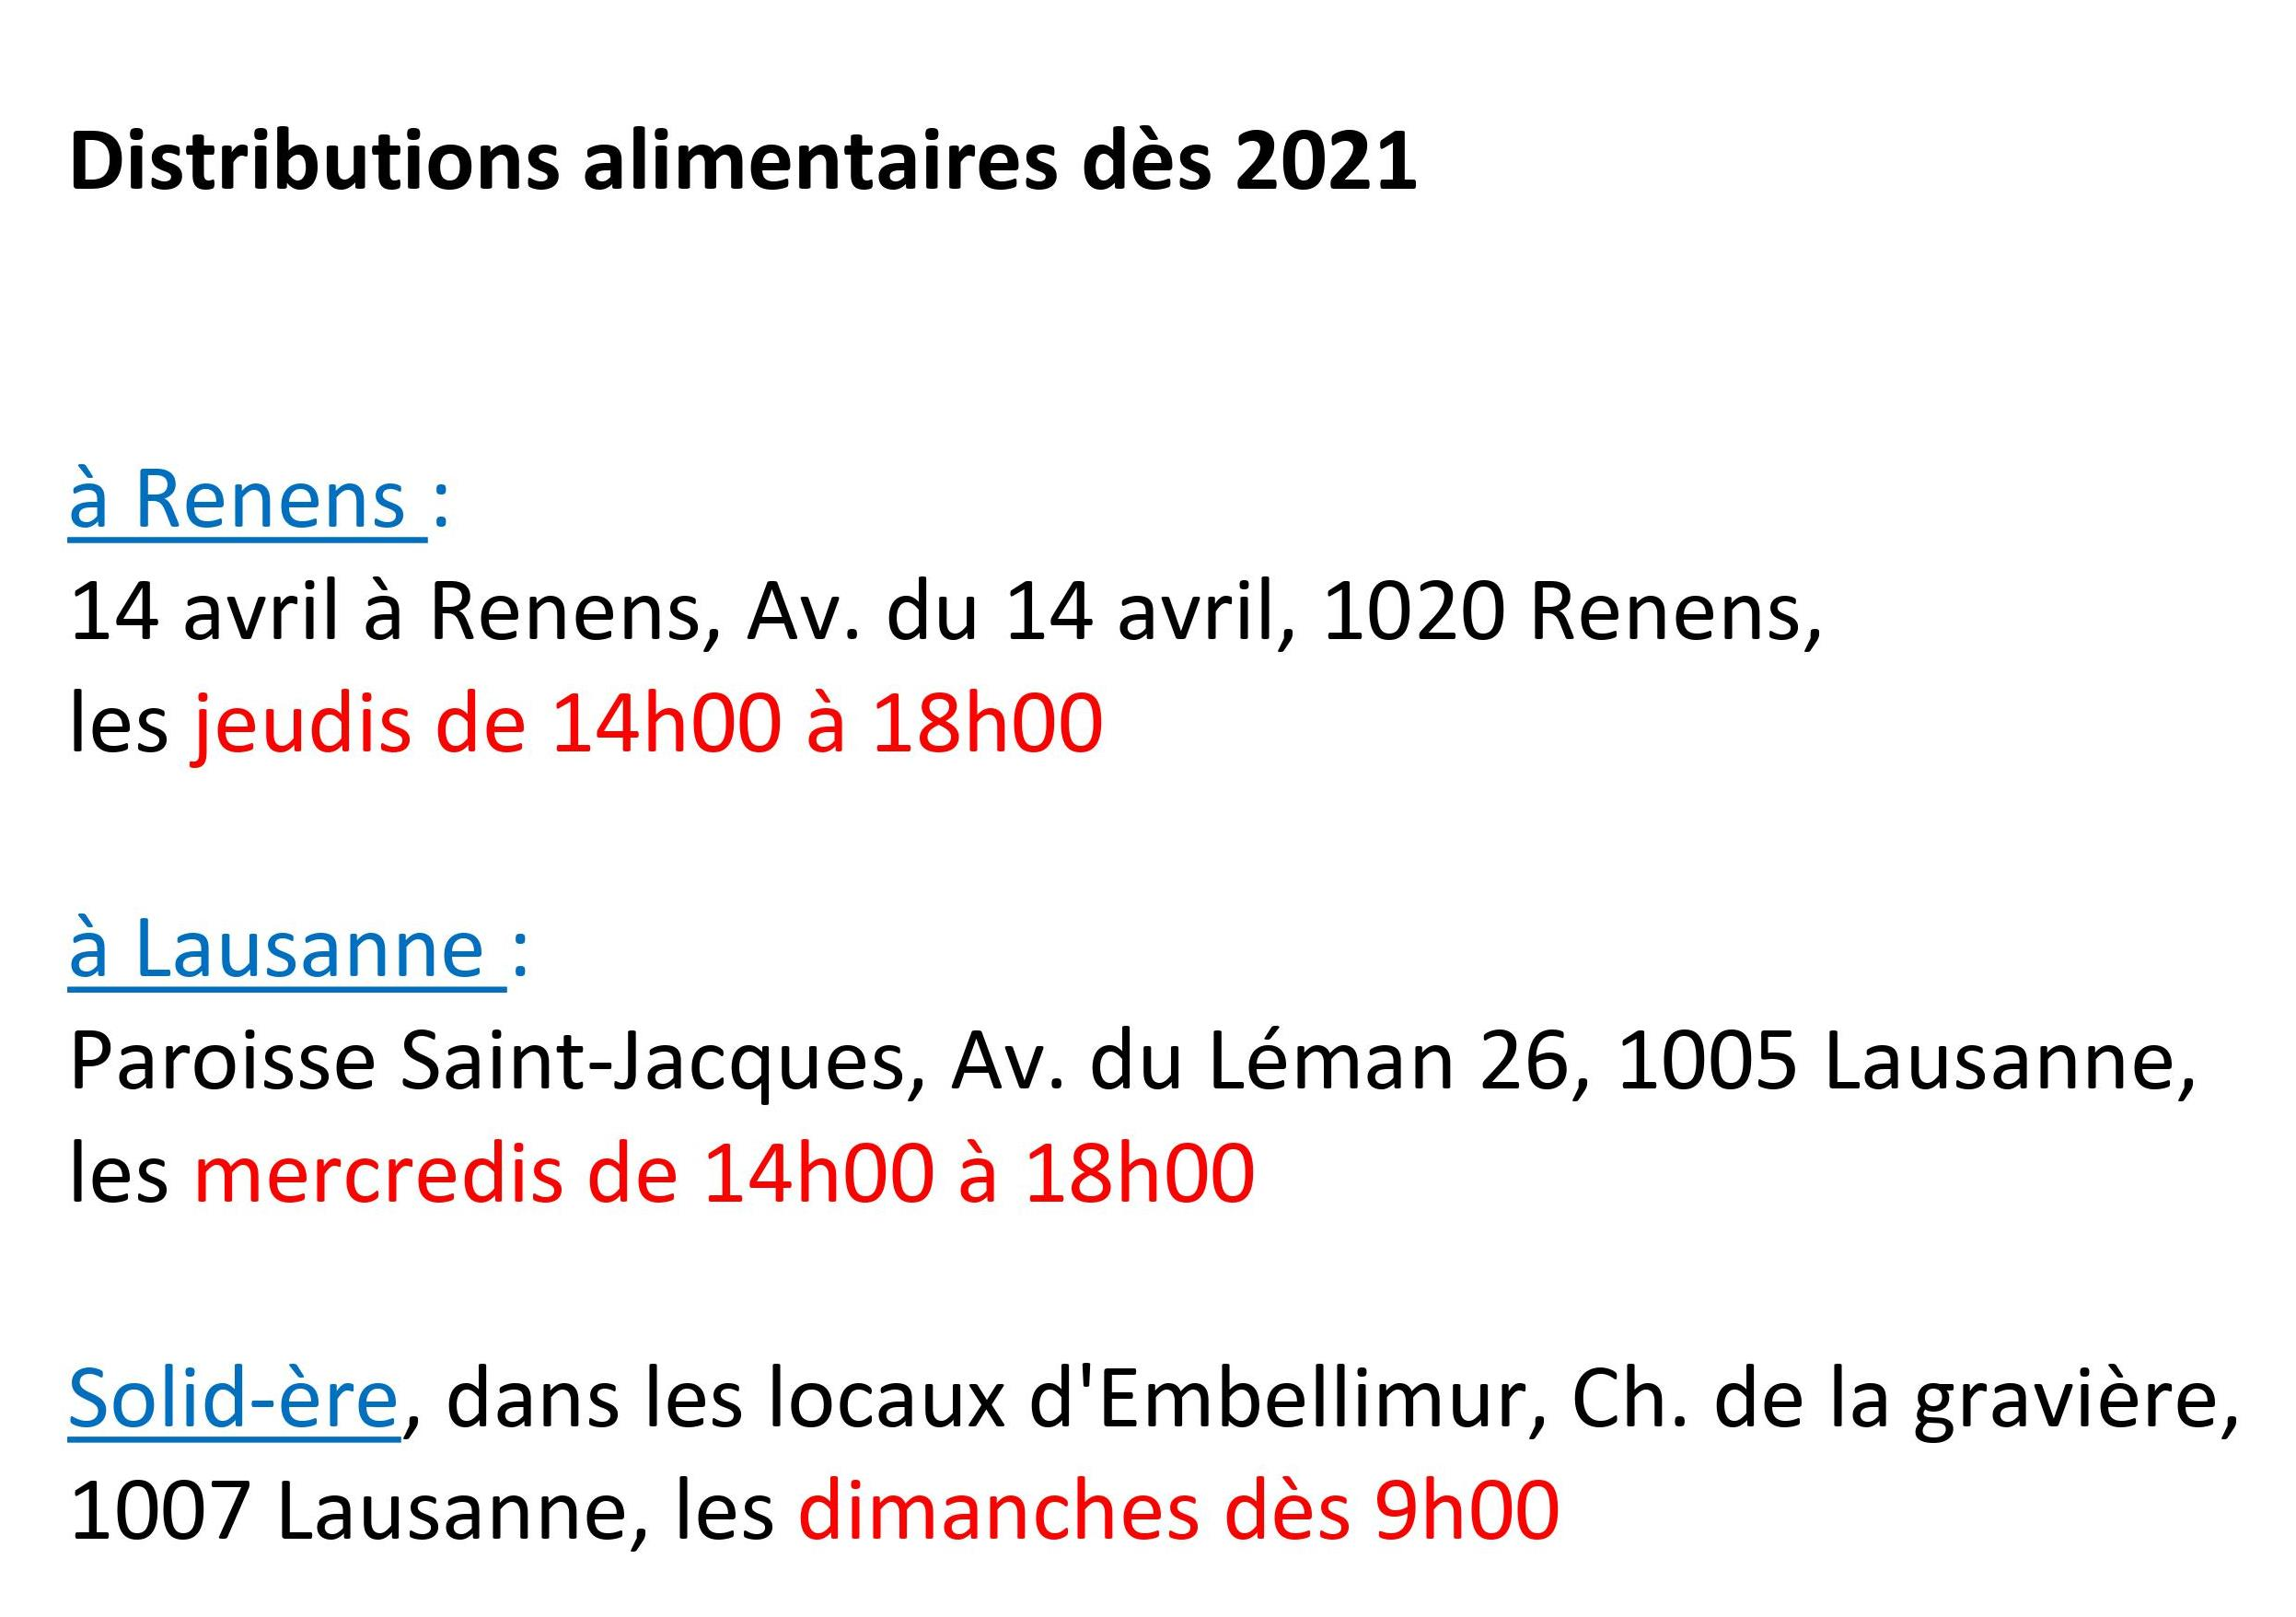 2021 Distributions alimentaires